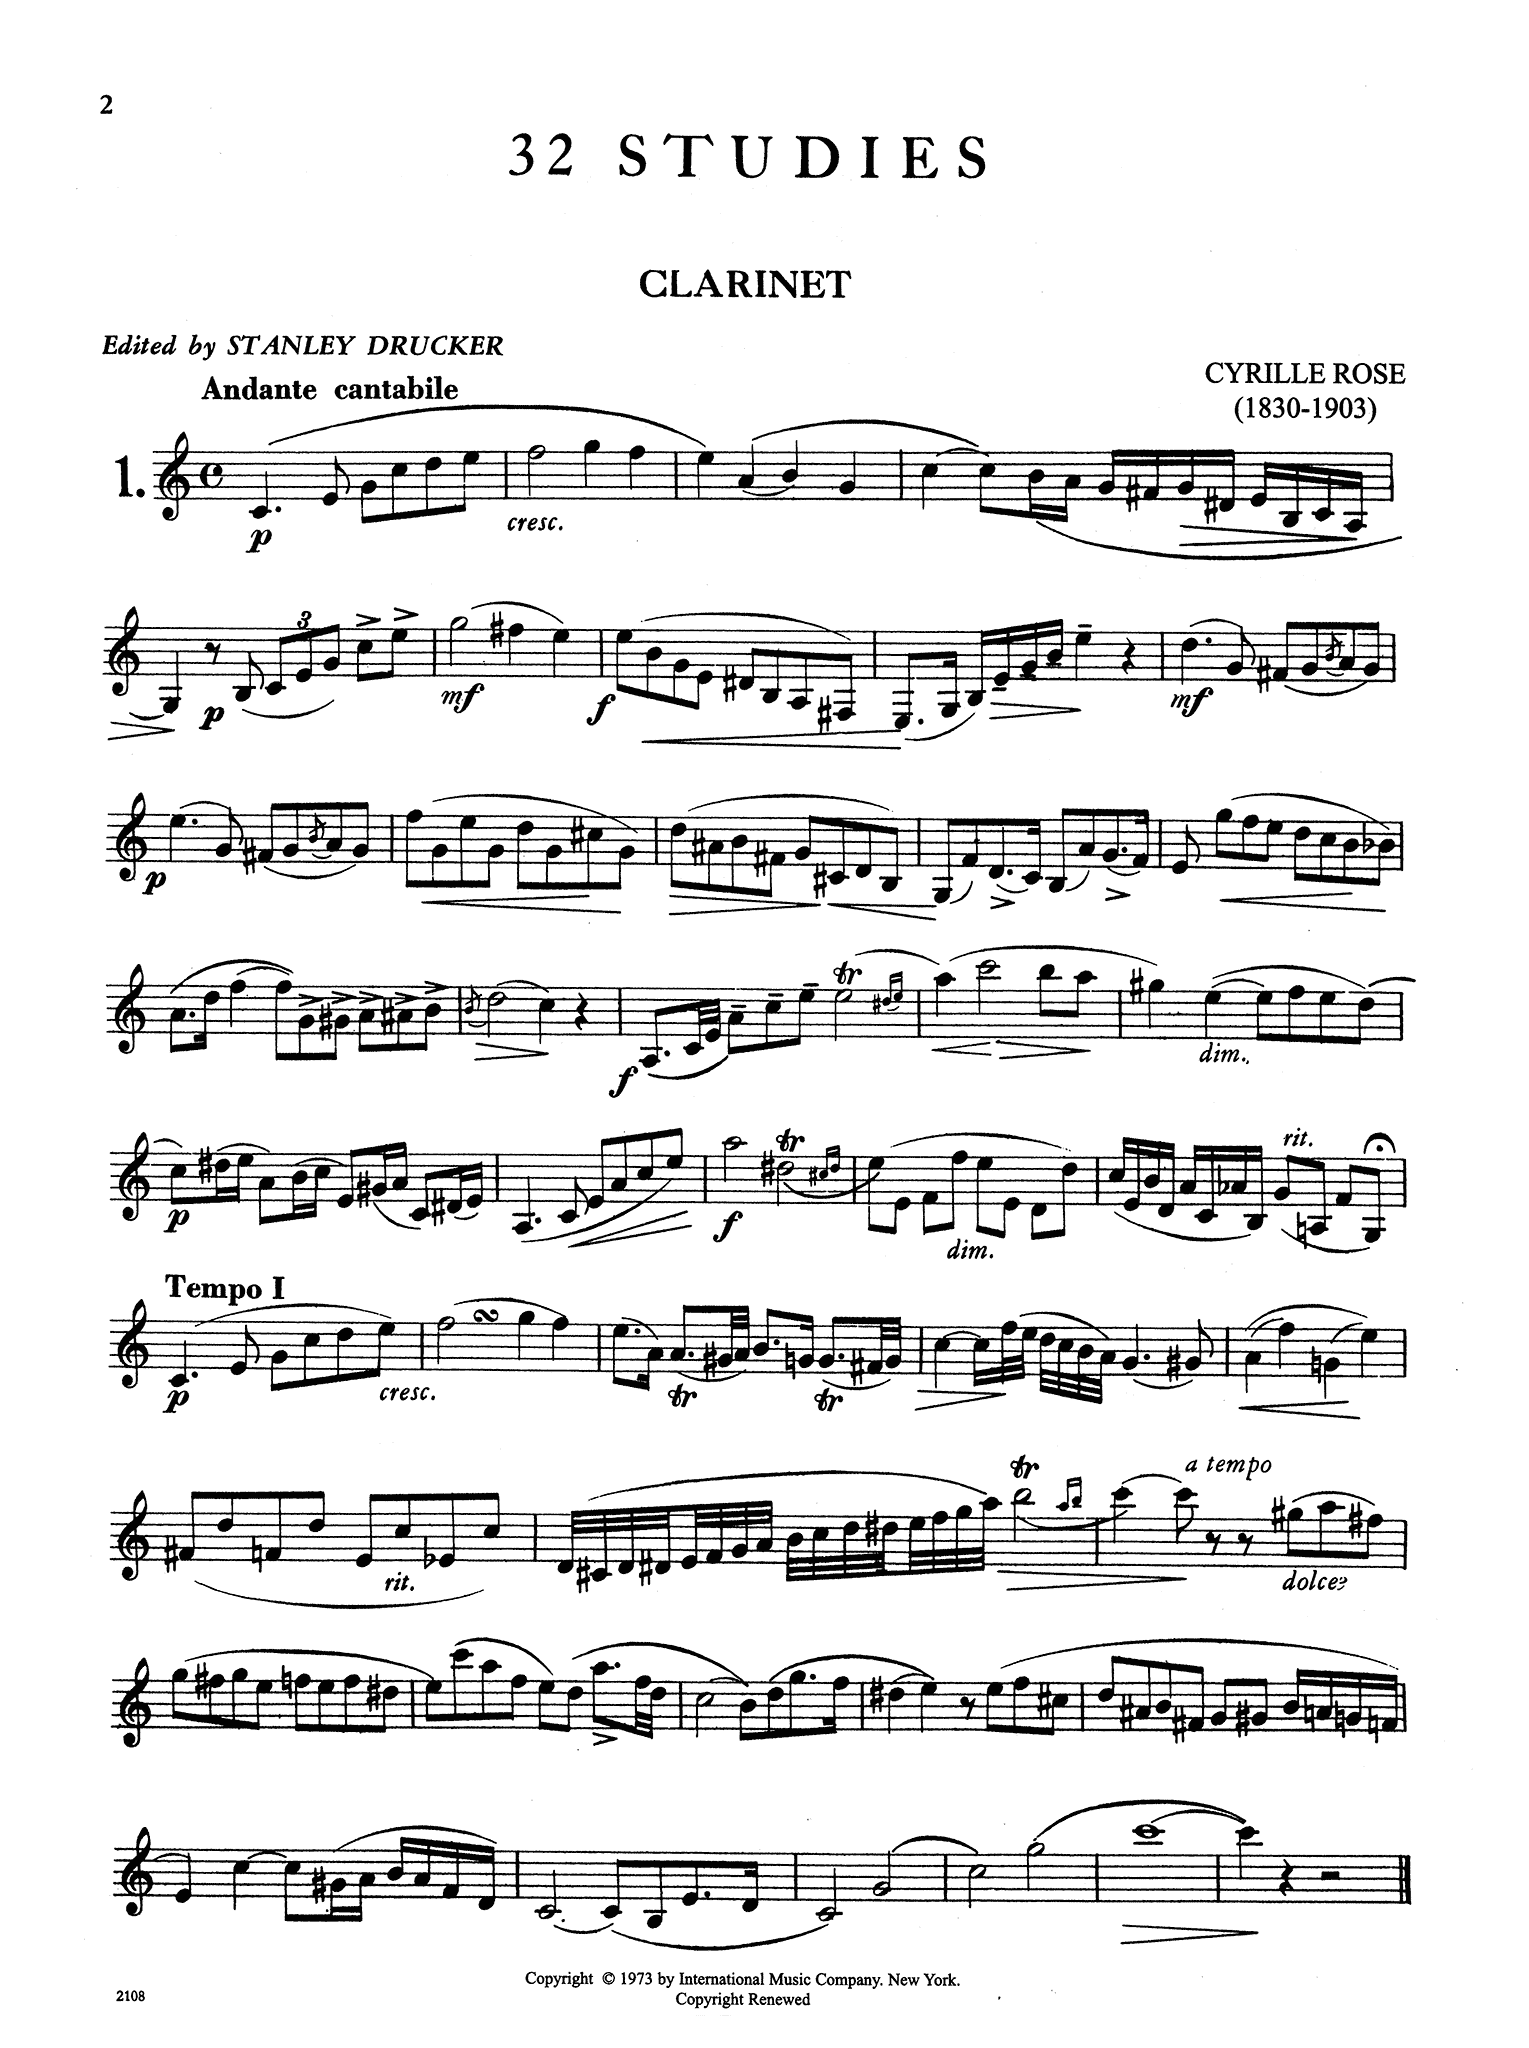 32 Études for Clarinet Page 2